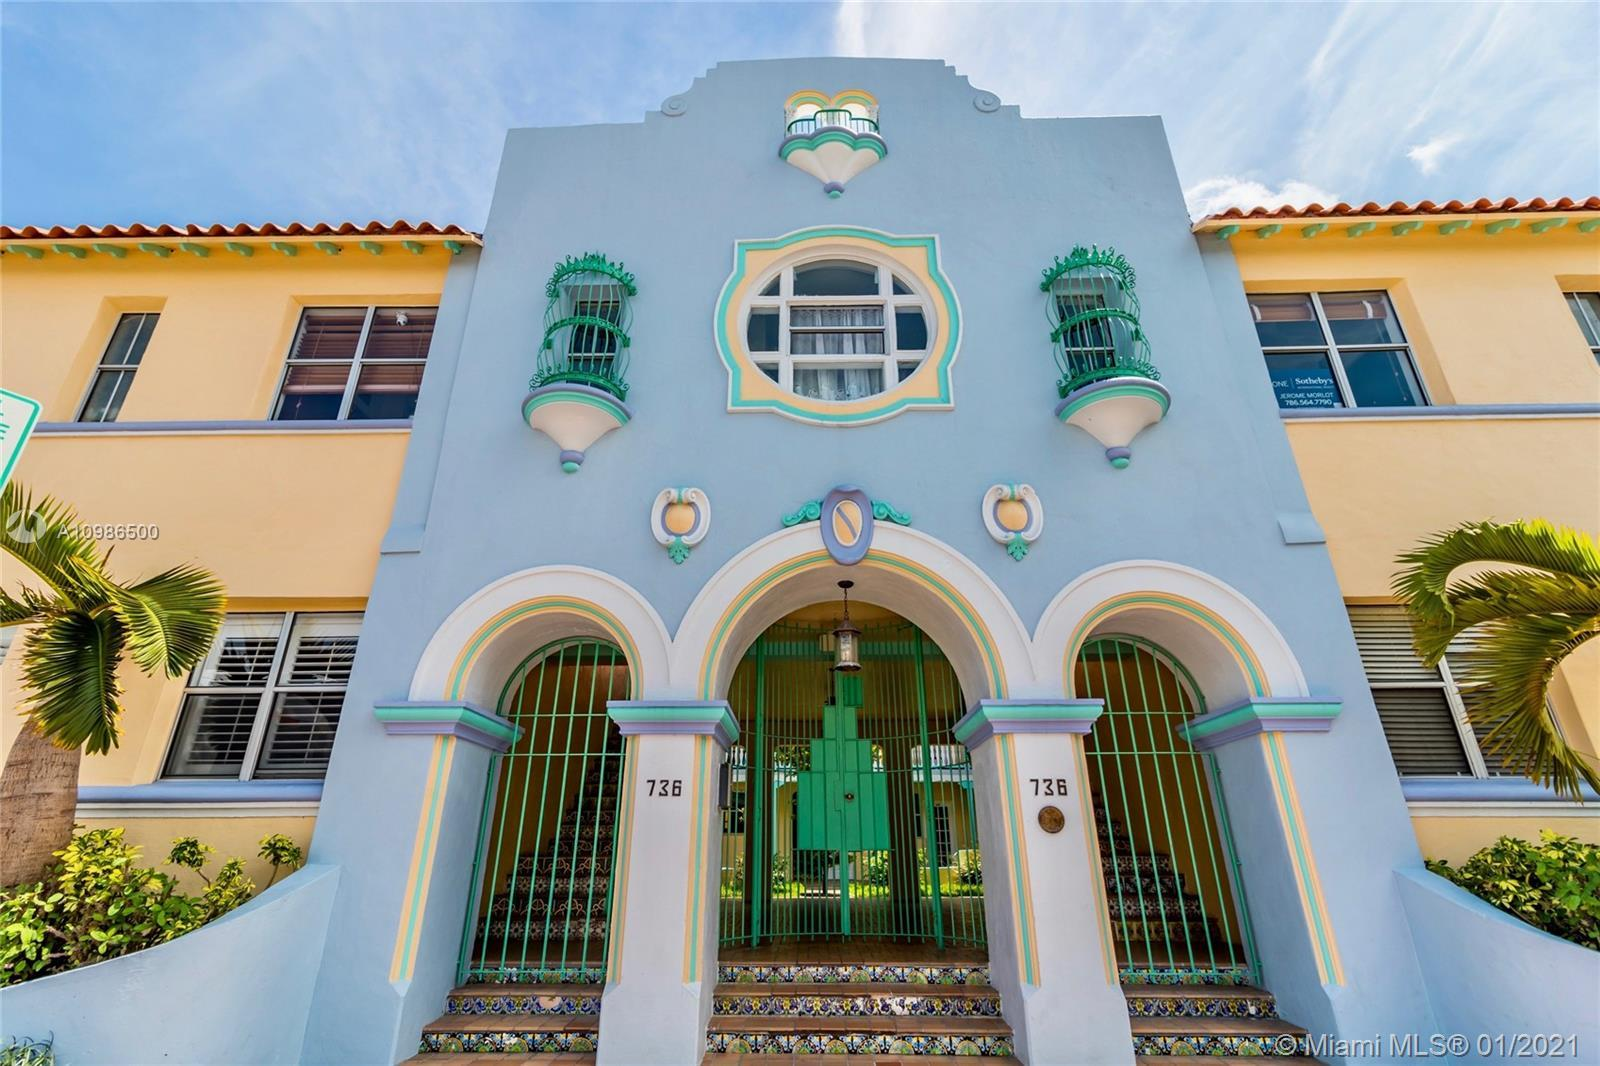 Probably the most charming historic building in the heart of South Beach! Boasts the lovely pastel c